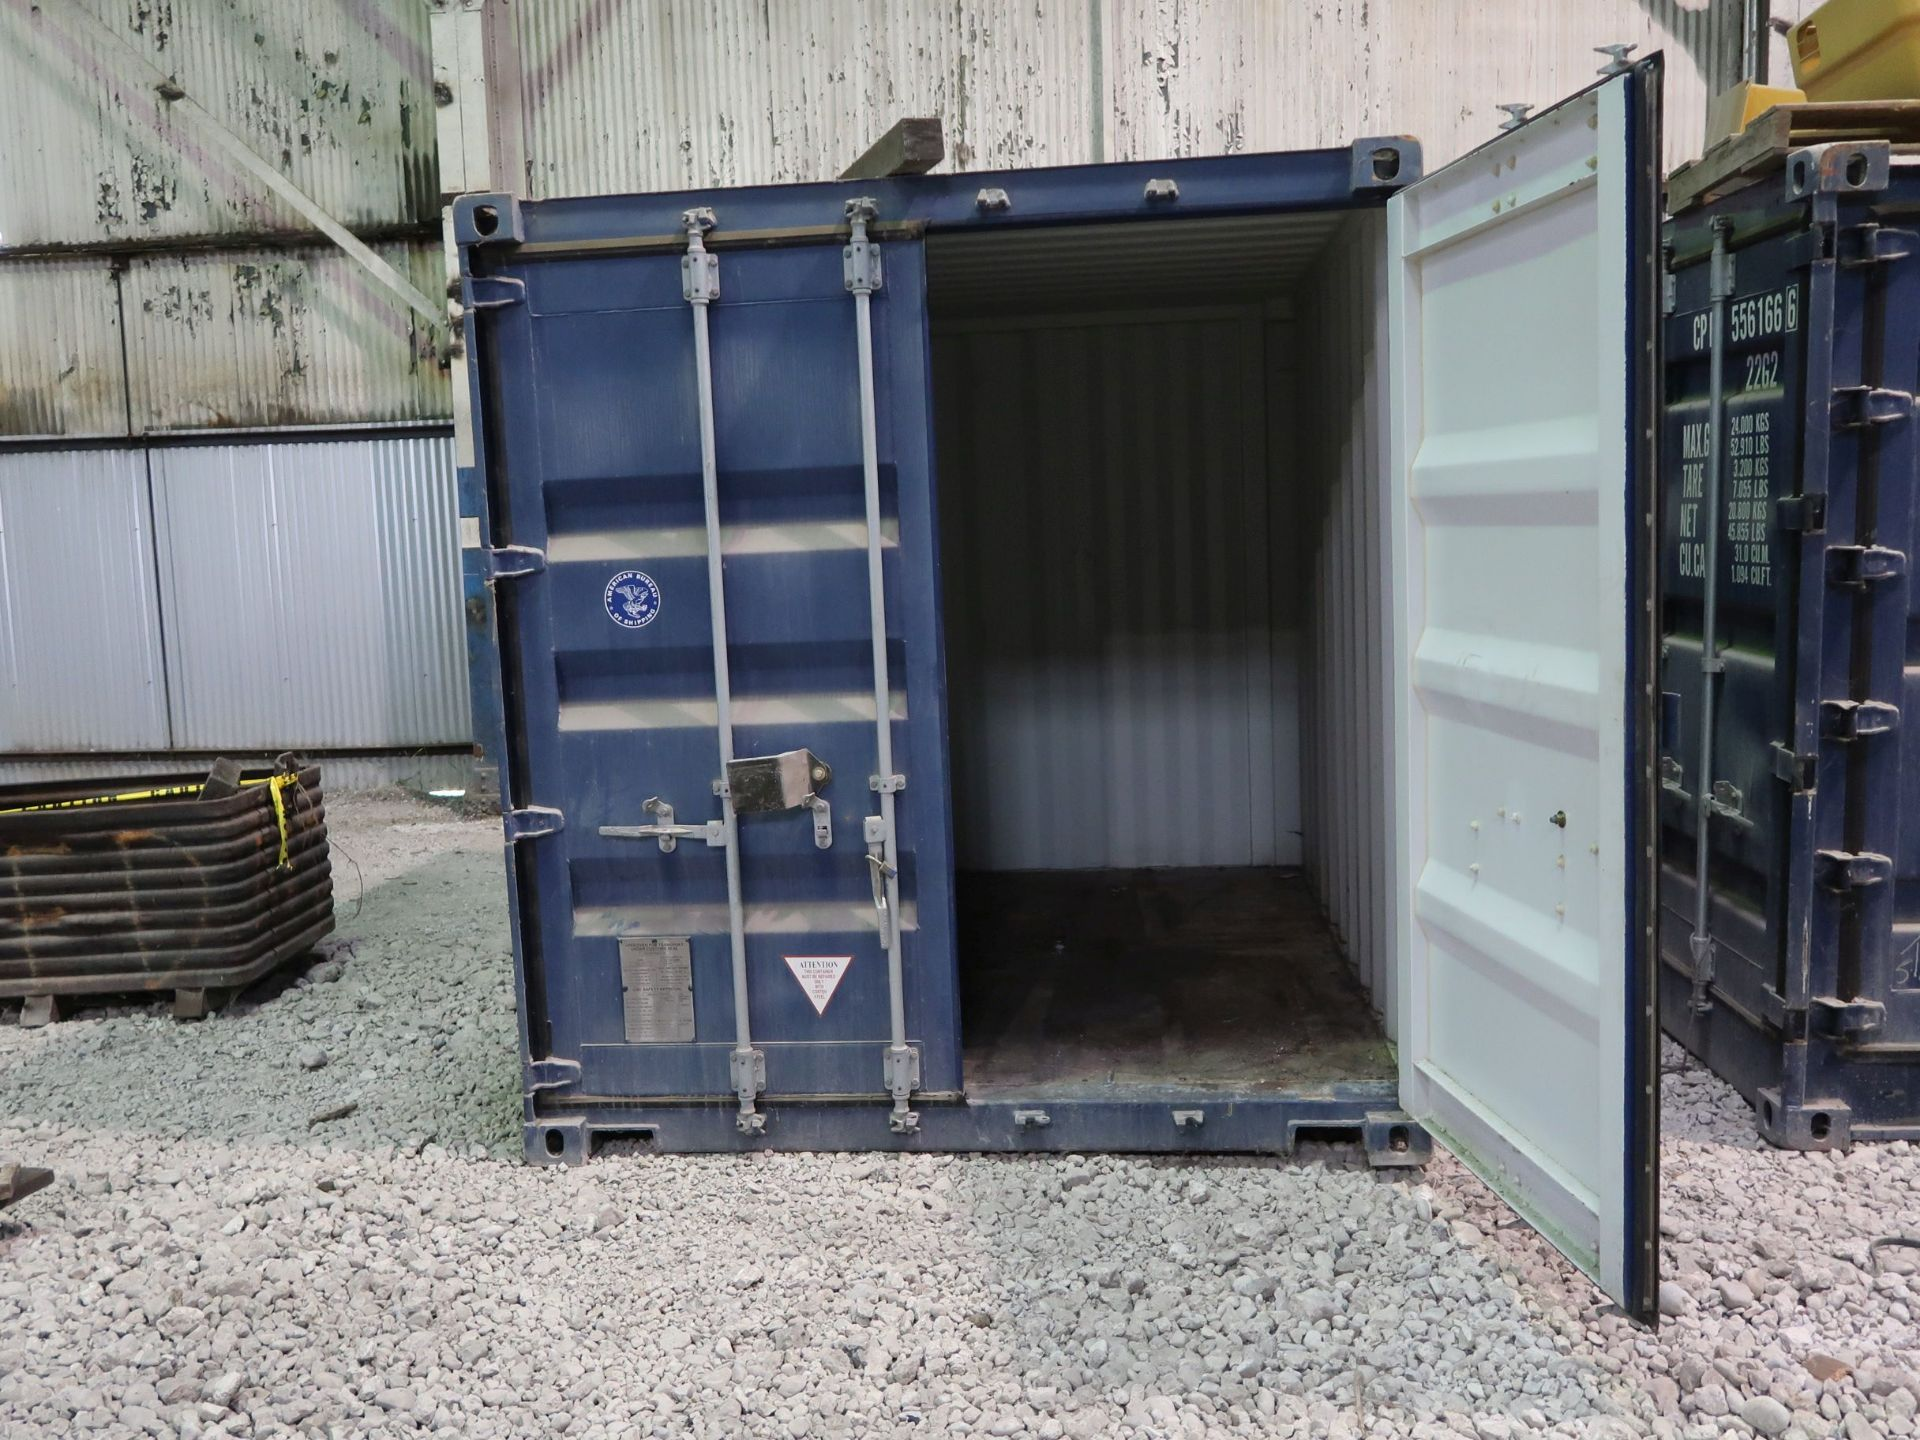 Lot 272 - 8' X 20' CONTAINER PROVIDERS INTERNATIONAL CONEX CONTAINER; NO. 182291 (NEW 2007)